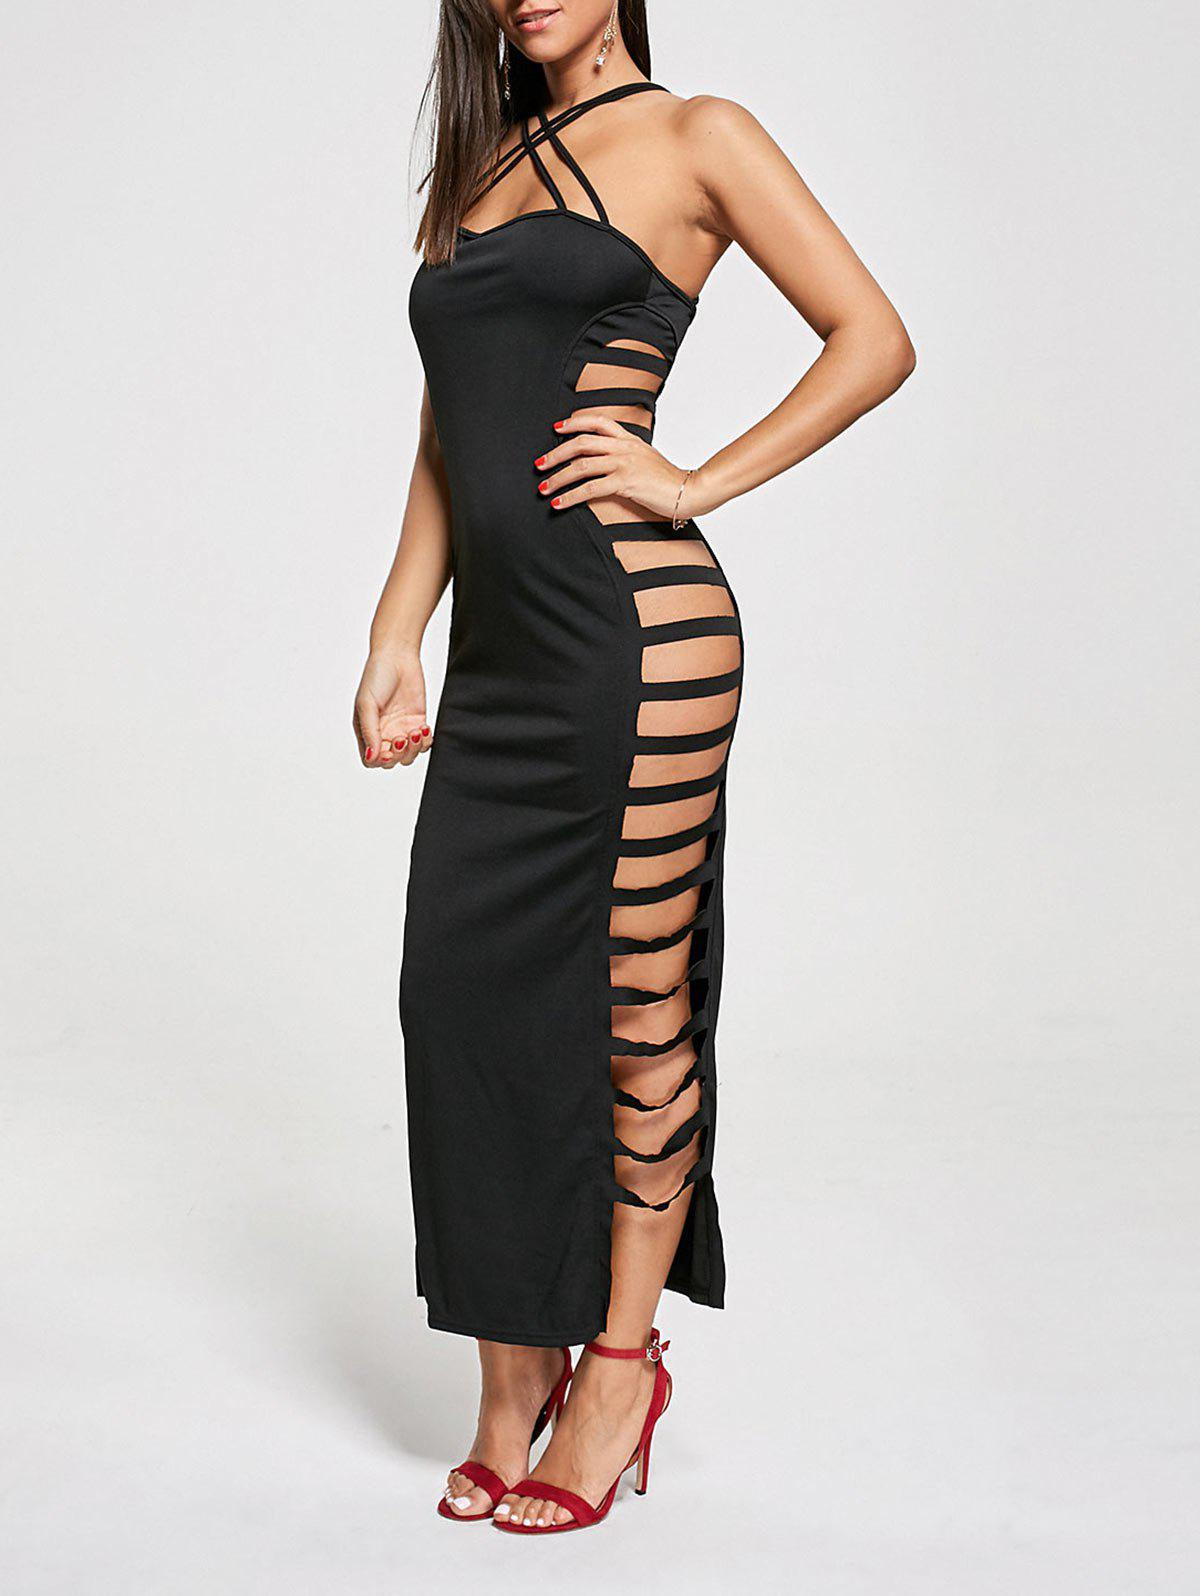 Backless Criss Cross Cut Out Maxi Club Hot DressWOMEN<br><br>Size: XL; Color: BLACK; Style: Sexy &amp; Club; Material: Polyester,Spandex; Silhouette: Bodycon; Dresses Length: Ankle-Length; Neckline: Spaghetti Strap; Sleeve Length: Sleeveless; Embellishment: Criss-Cross,Cut Out; Pattern Type: Solid Color; With Belt: No; Season: Summer; Weight: 0.3000kg; Package Contents: 1 x Dress; Occasion: Club,Night Out;